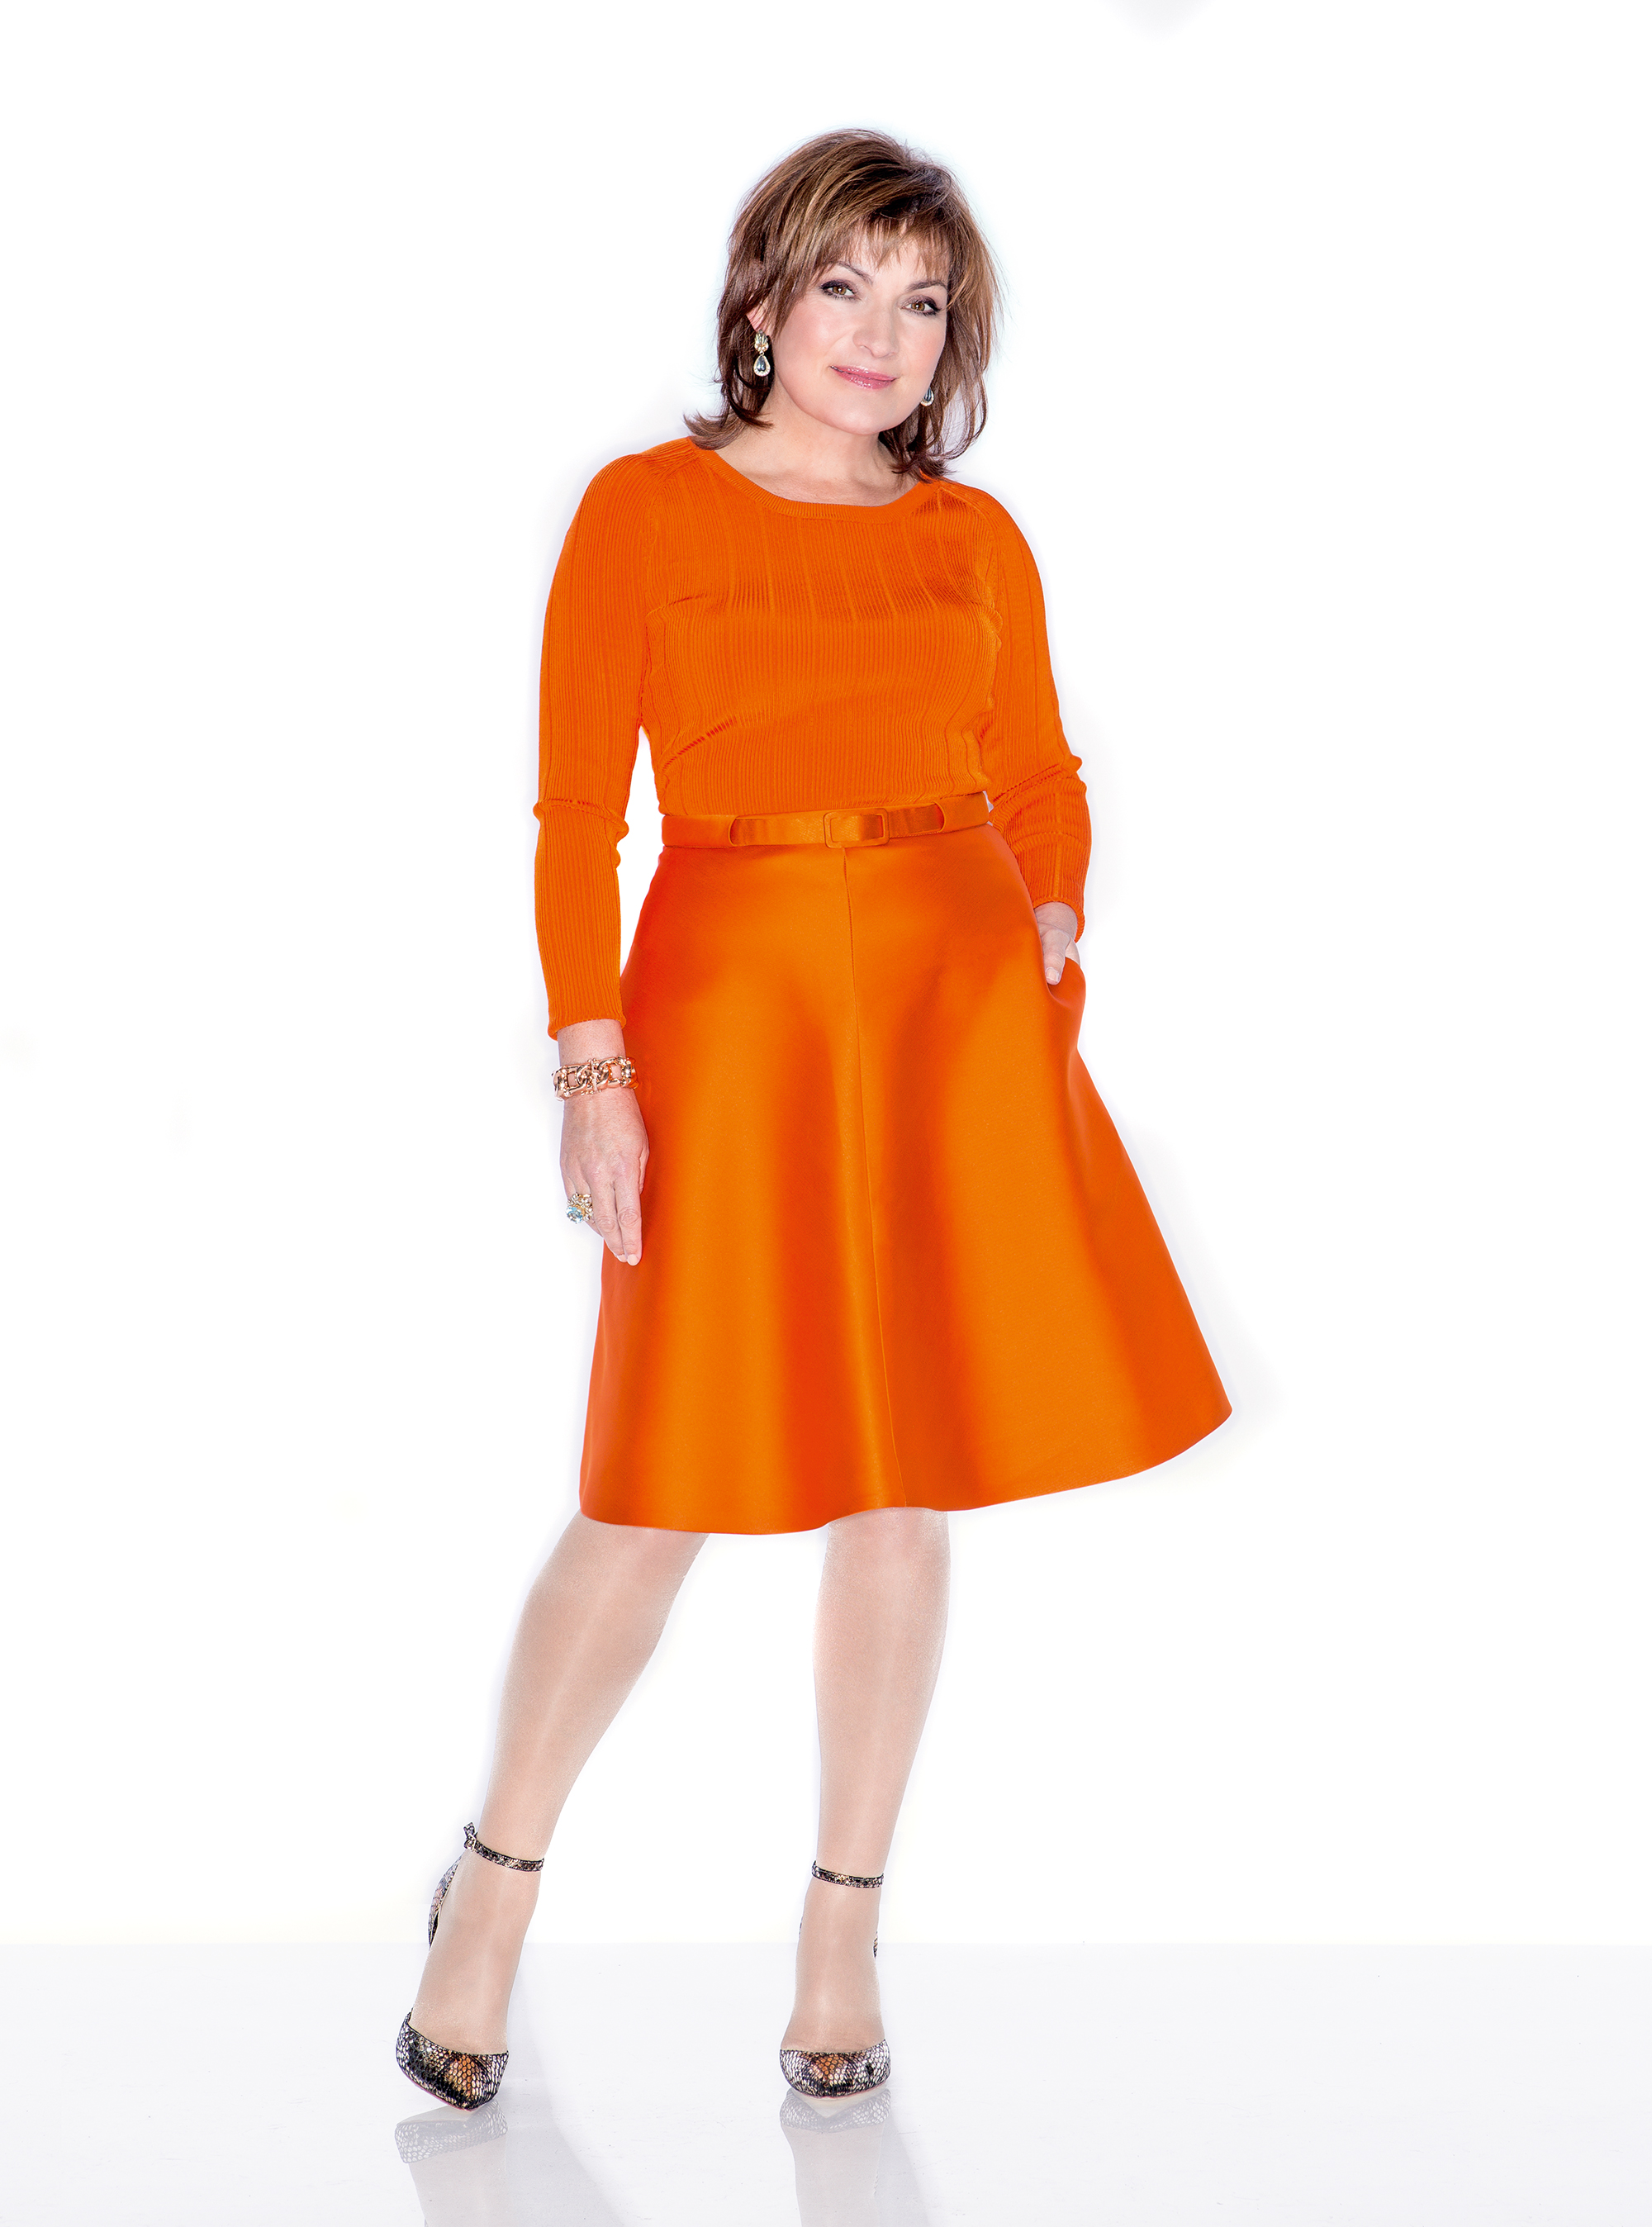 Lorraine Kelly Interview July 2014 Woman And Home